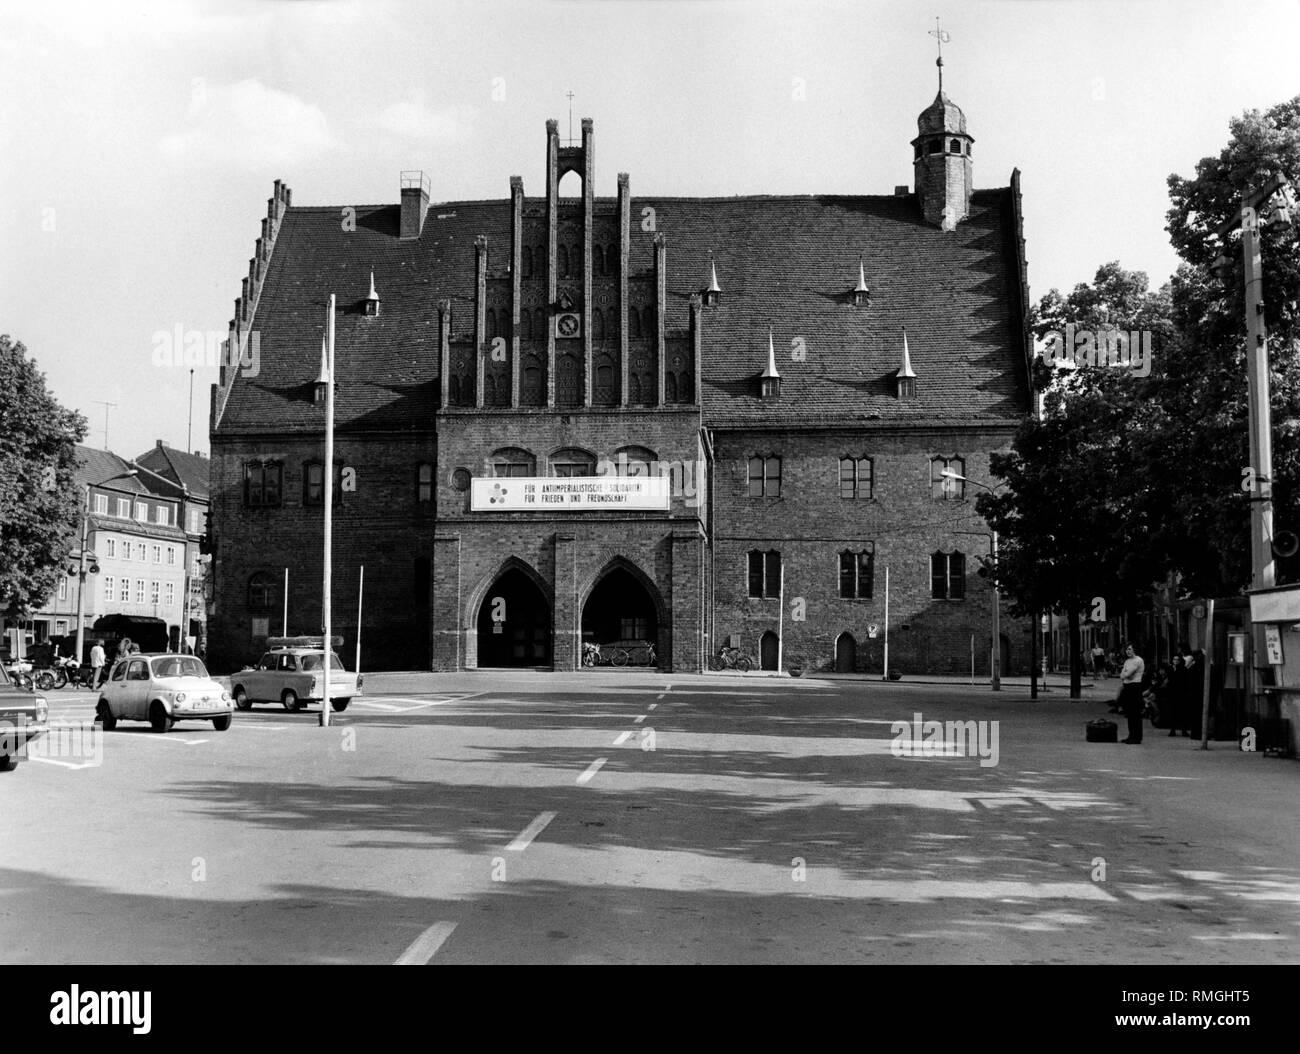 View of the brick Gothic Town Hall with the inscription 'For anti-imperialist solidarity, for peace and friendship' to celebrate the Xth World Festival of Youth and Students in Berlin 1973 on the market square in Jueterbog, Brandenburg. - Stock Image